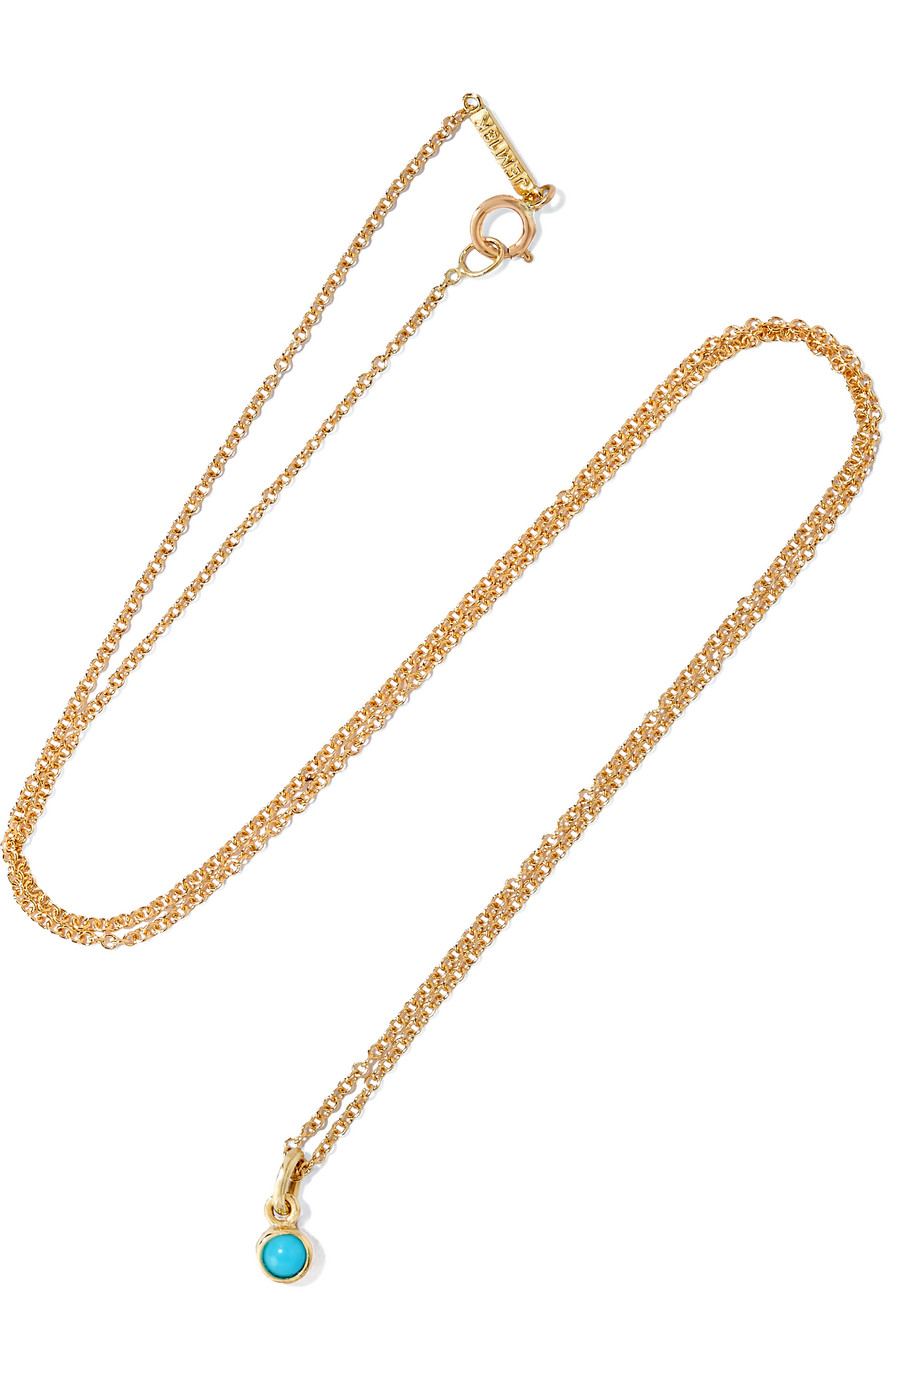 Jennifer Meyer 18-Karat Gold Turquoise Necklace, Gold/Turquoise, Women's